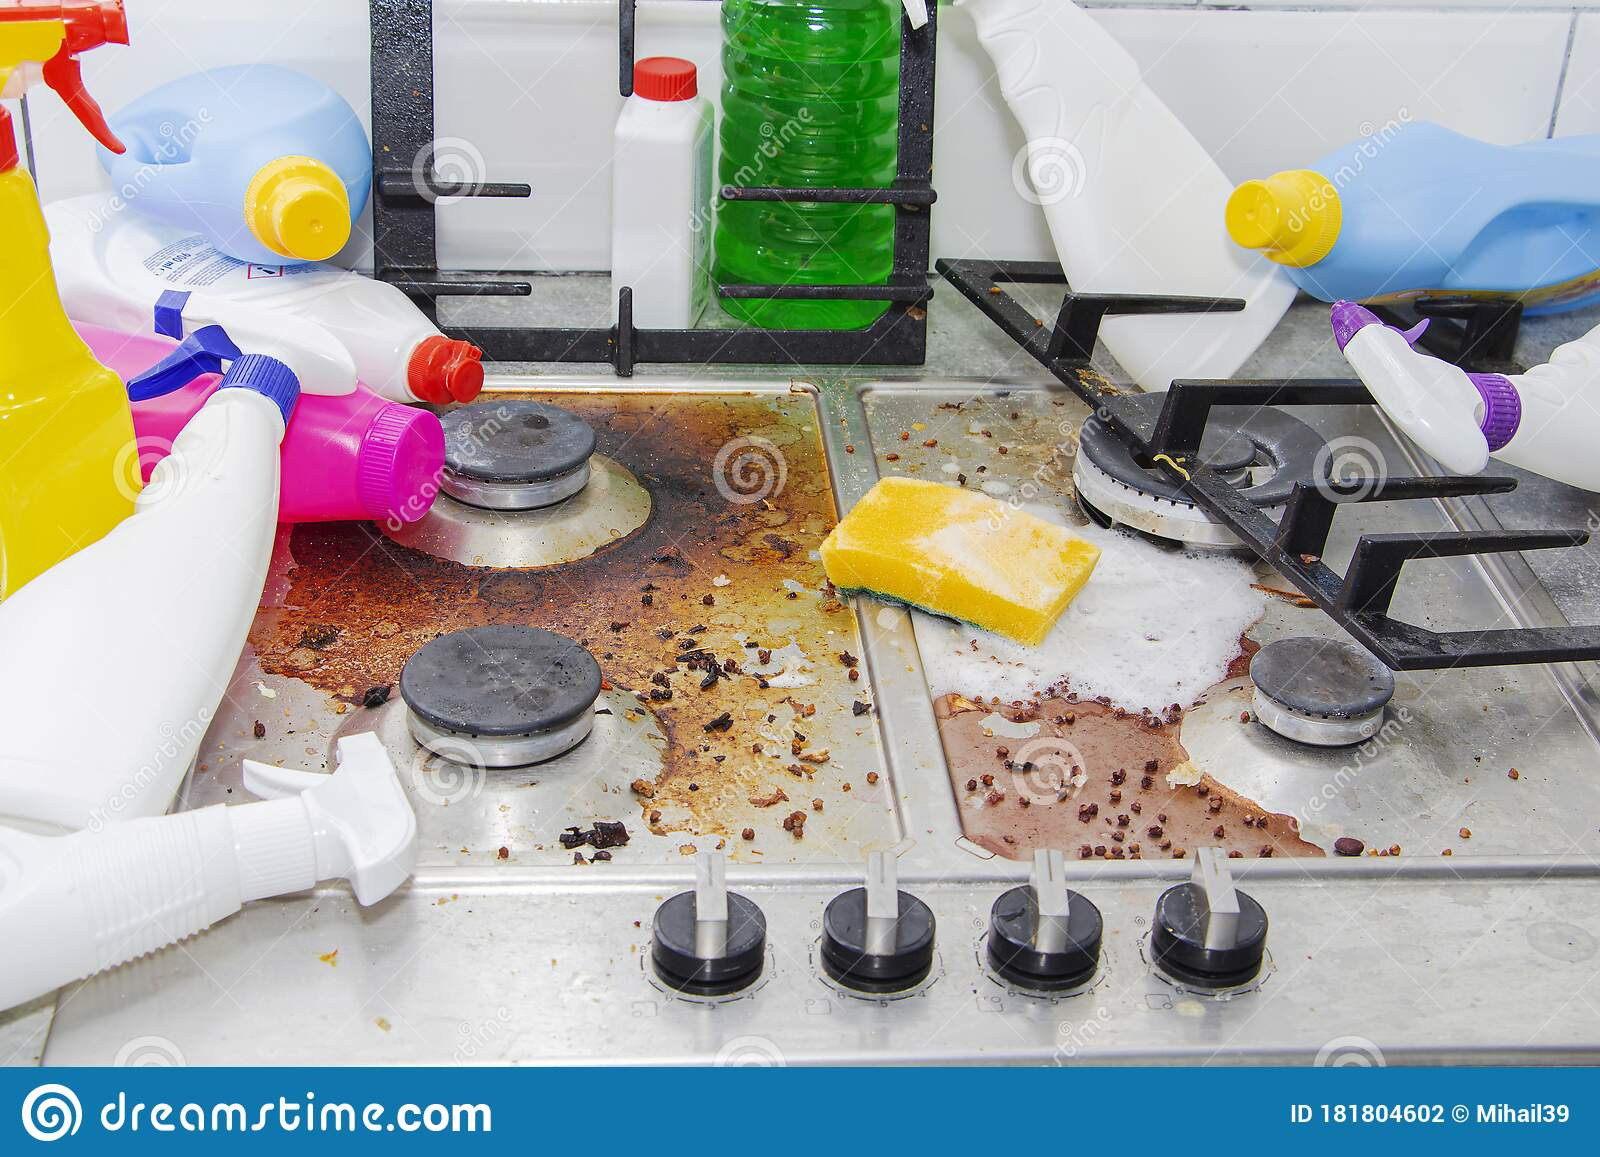 Dirty Kitchen Stove, Empty And Full Bottles Of Detergents